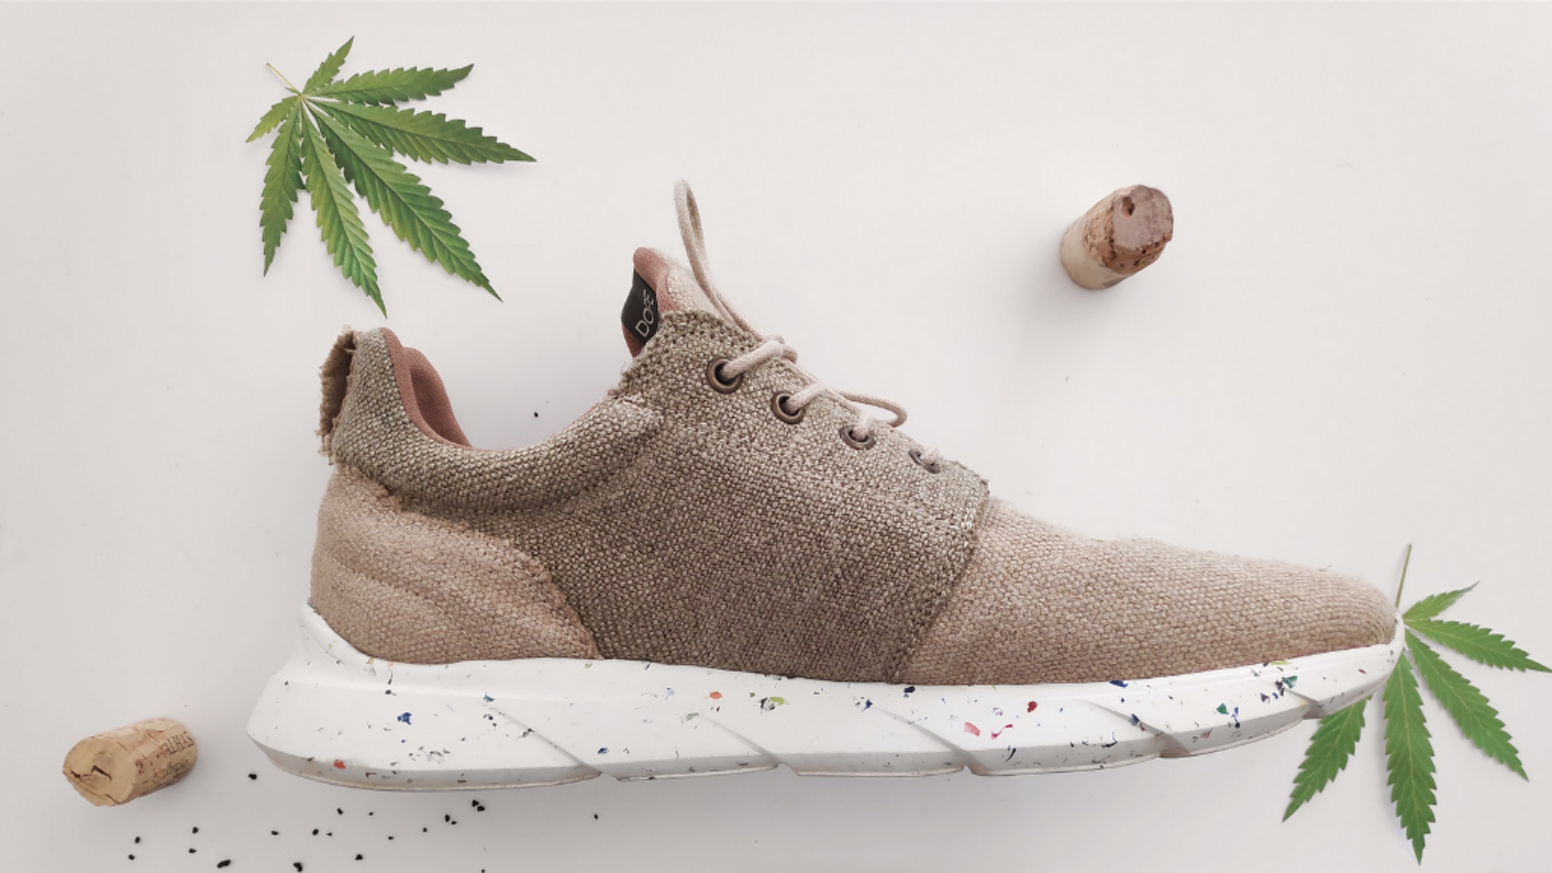 Presenting the world's 1st eco-friendly shoes made from hemp, that are also waterproof. The shoes you will explore with for a lifetime. Order now on our website!